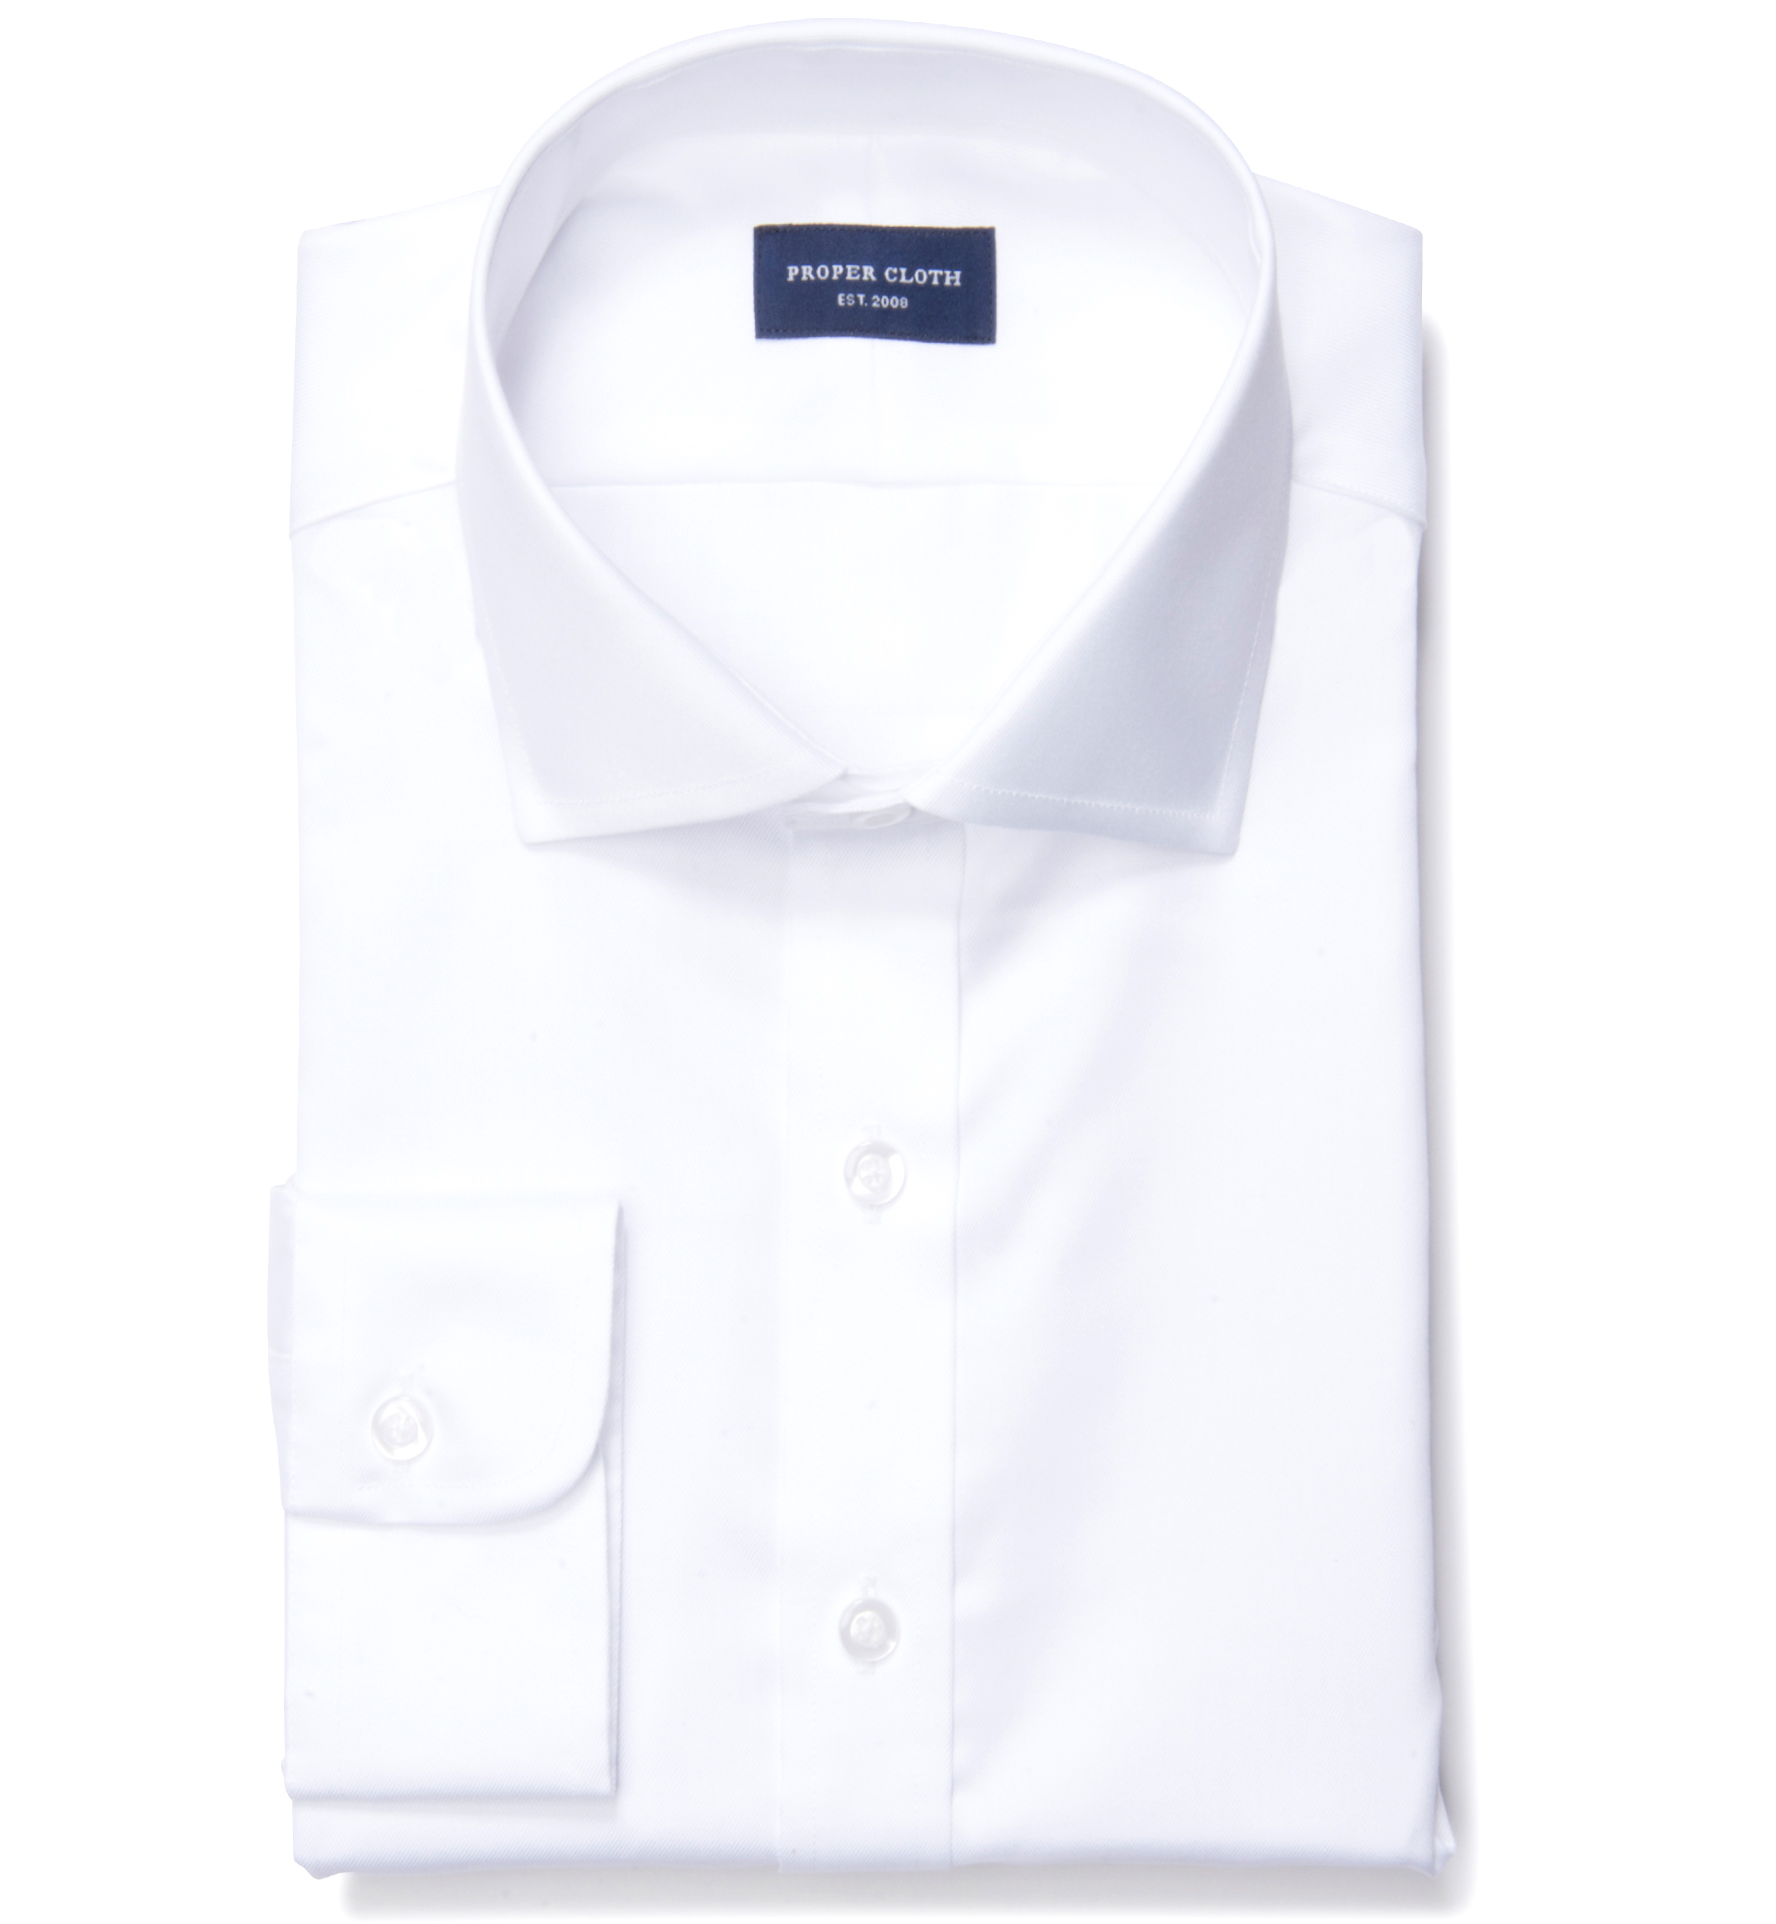 White extra wrinkle resistant 80s twill custom dress shirt for Proper cloth custom shirt price